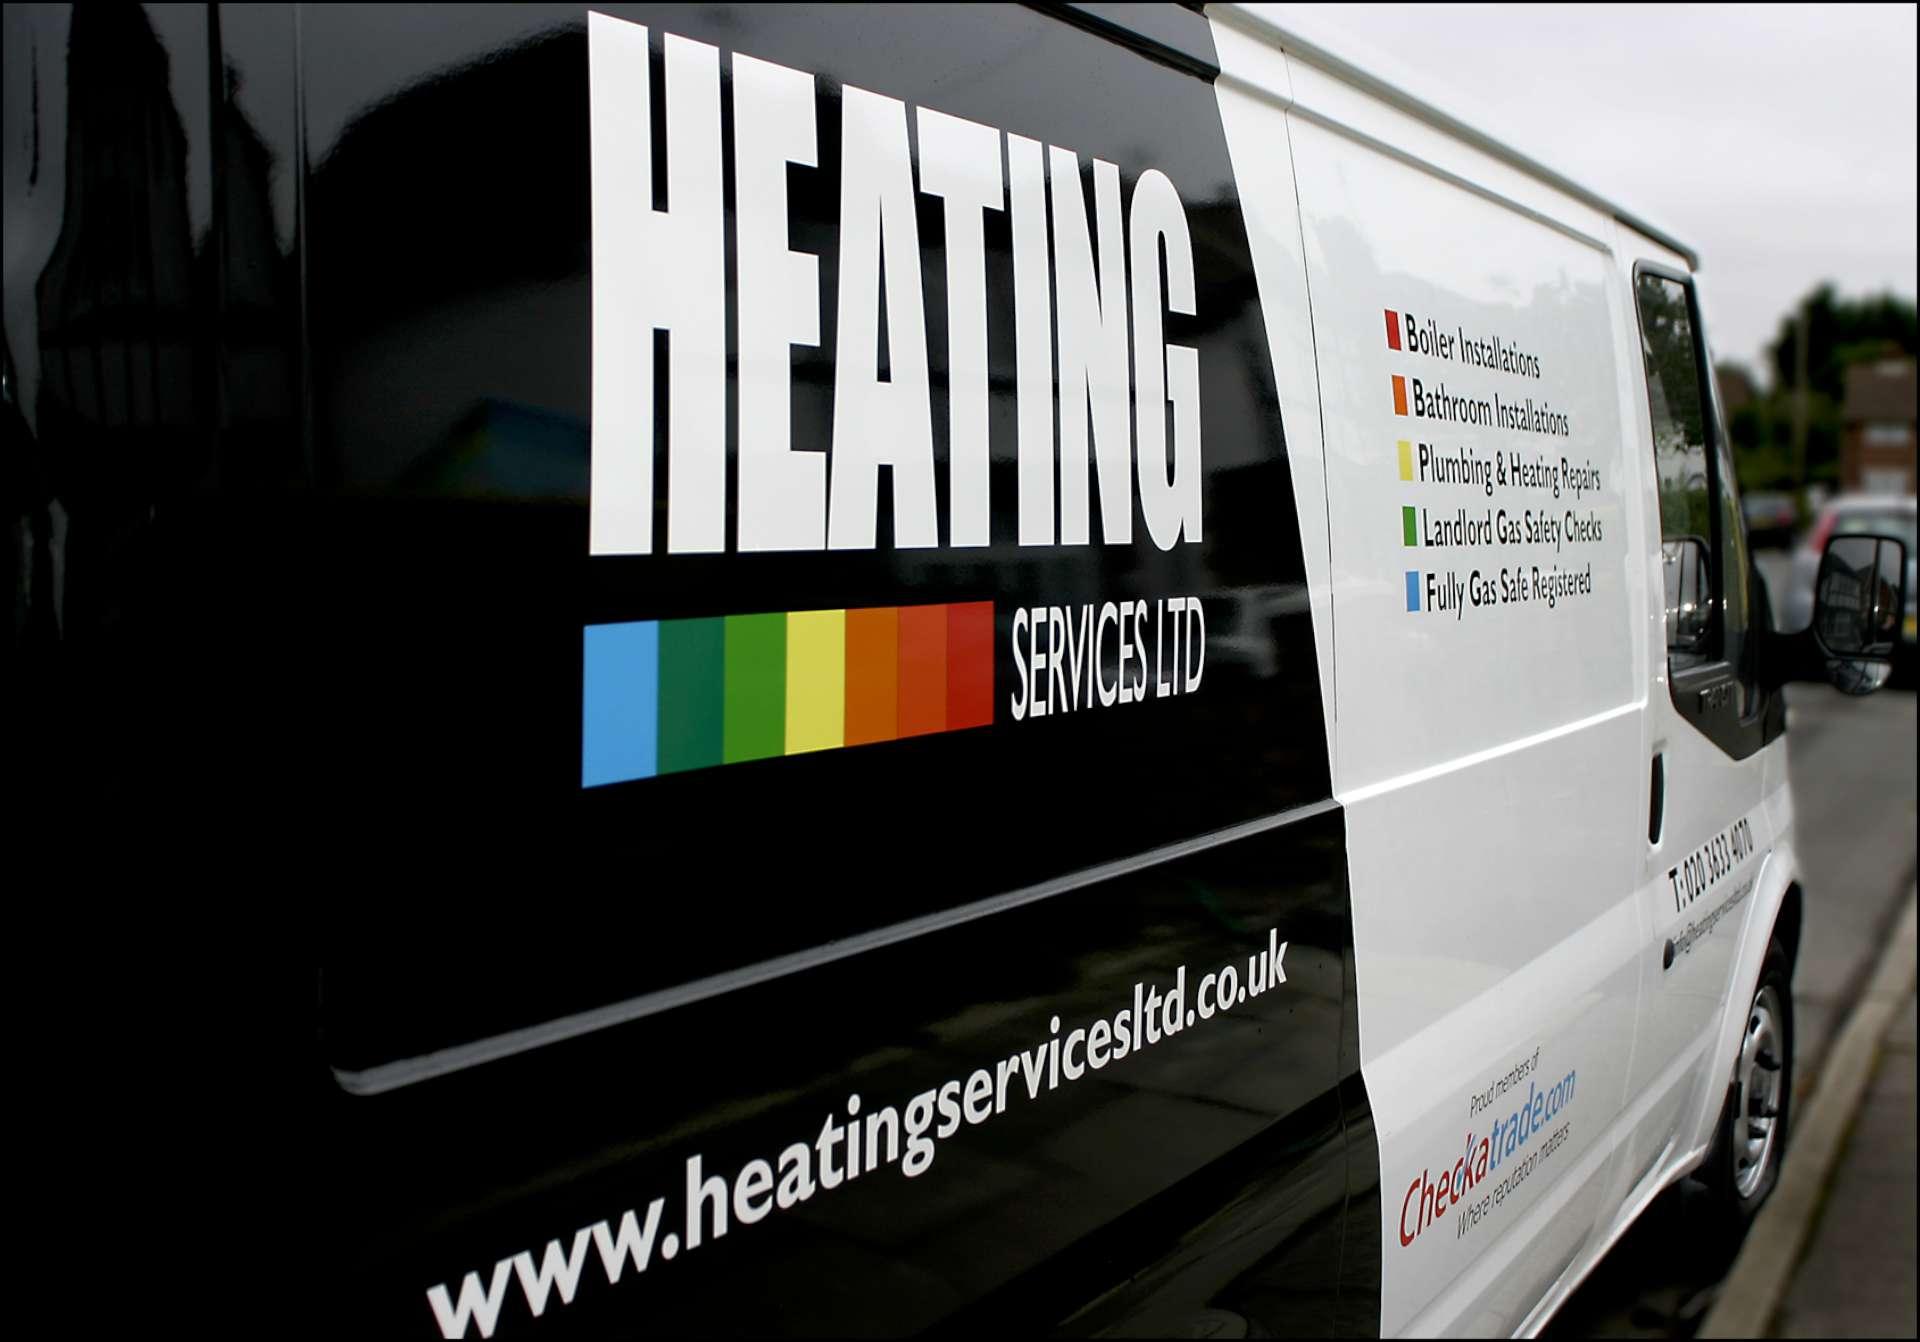 Plumbers Boiler Installation_ Service and Repairs and Bathroom Design and Installation by Heating Services Ltd in Orpington (2)